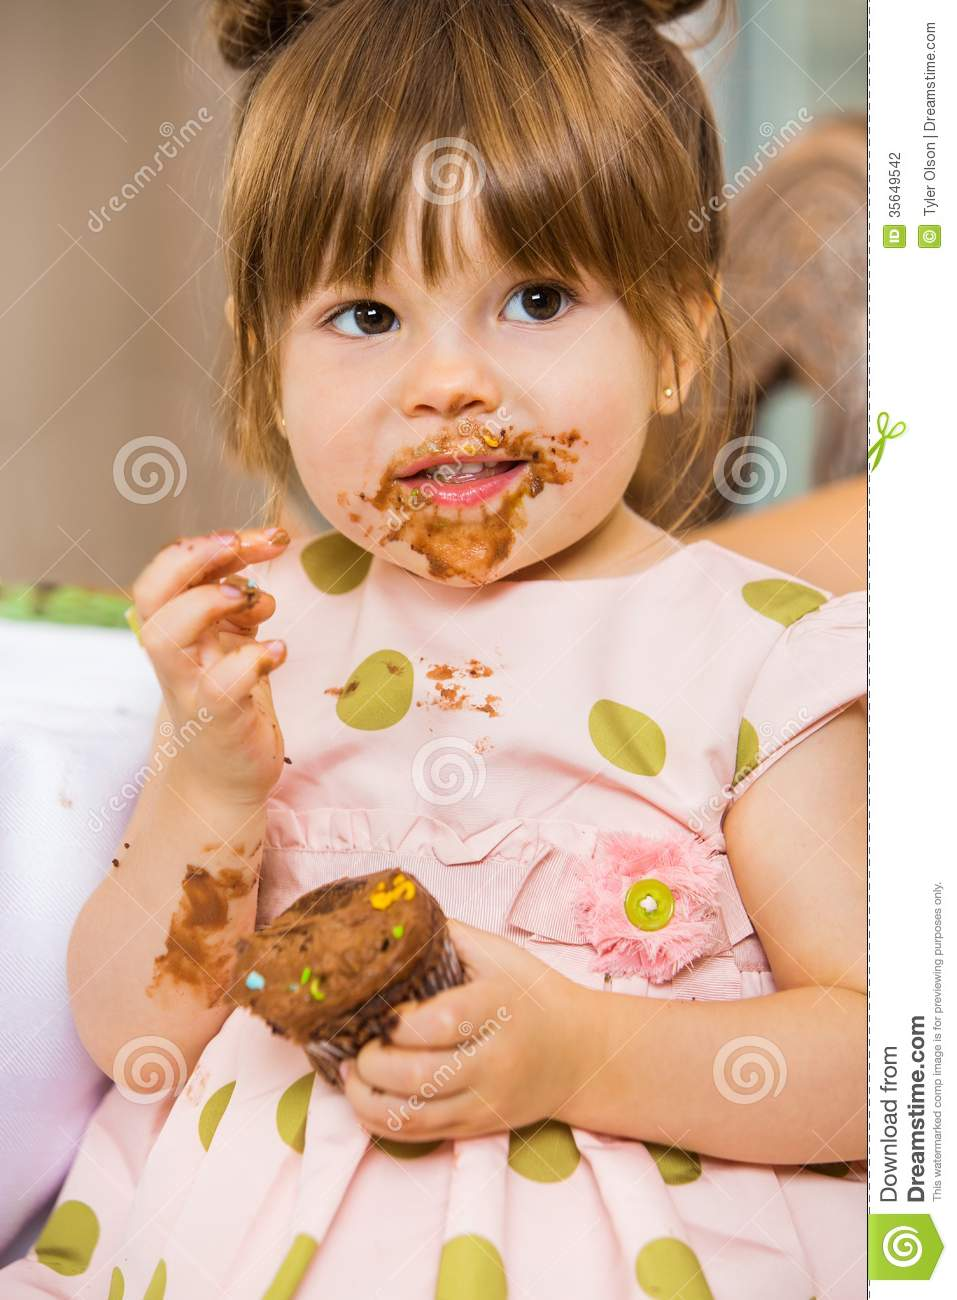 Girl Eating Birthday Cake With Icing On Her Face Stock